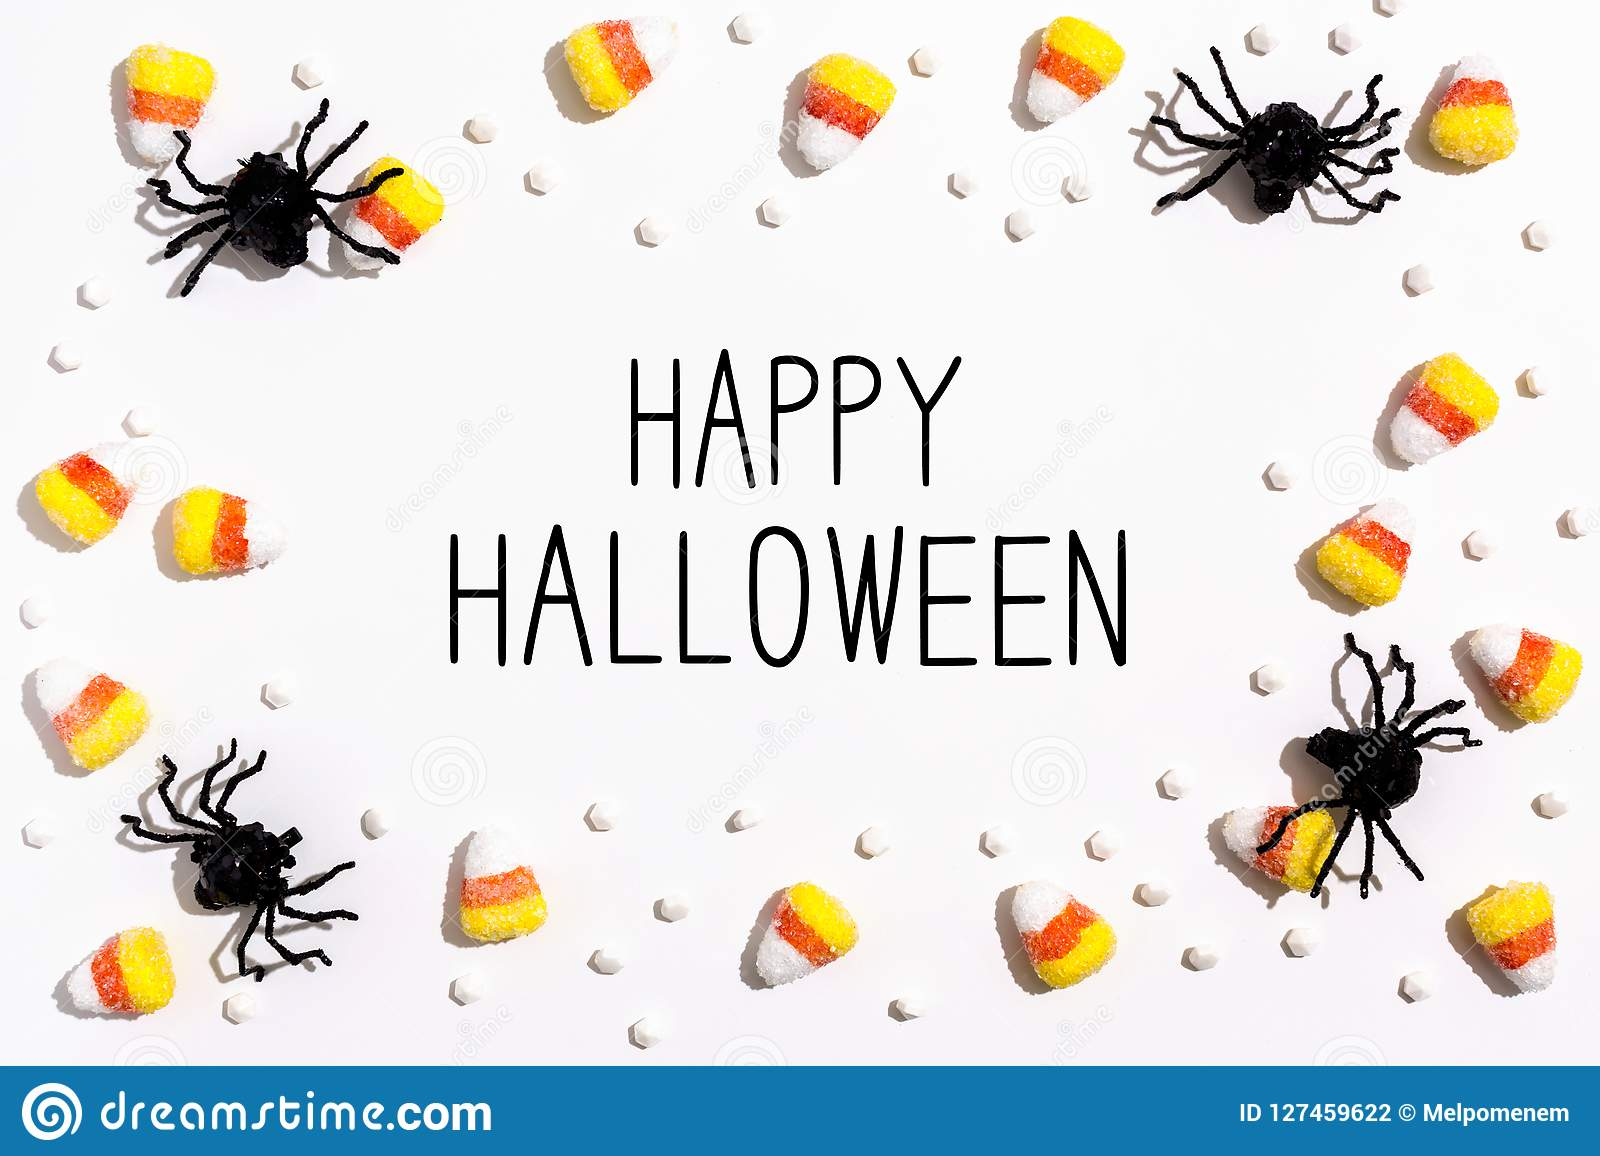 Happy Halloween message with spiders overhead view